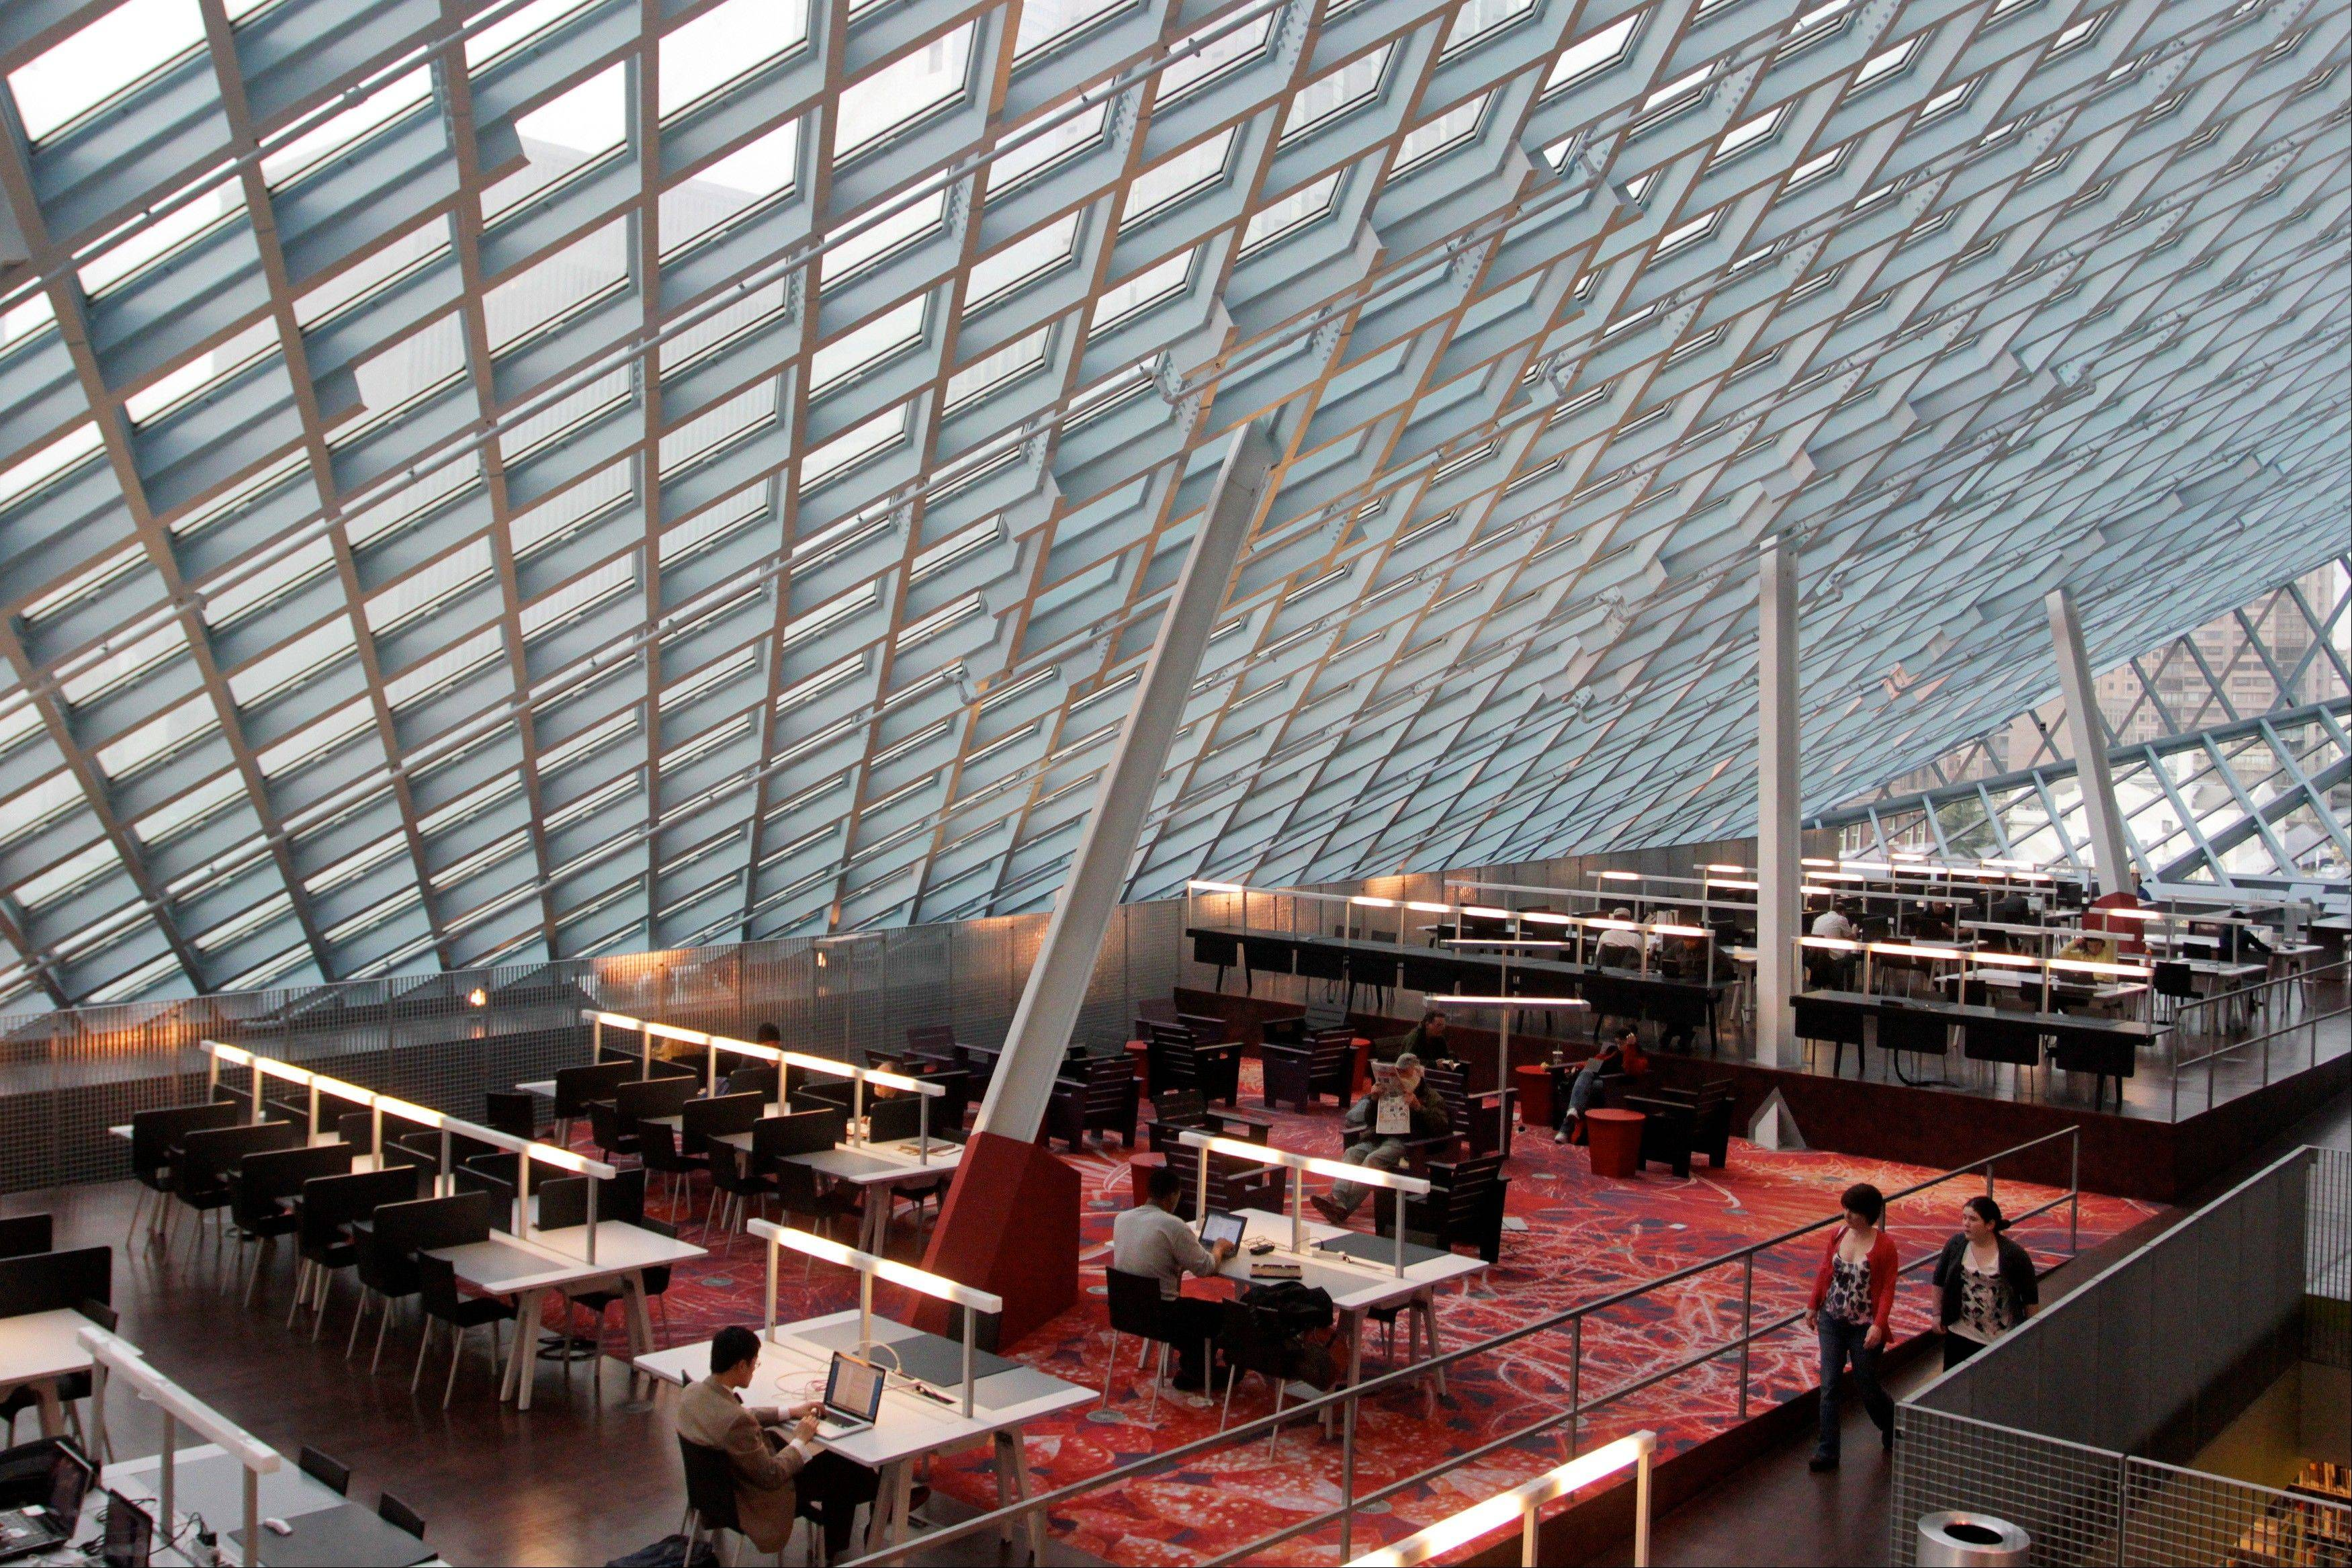 The interior of the Seattle Central Library. The $165 million building's unusual design and decoration attracts visitors from all over the world.